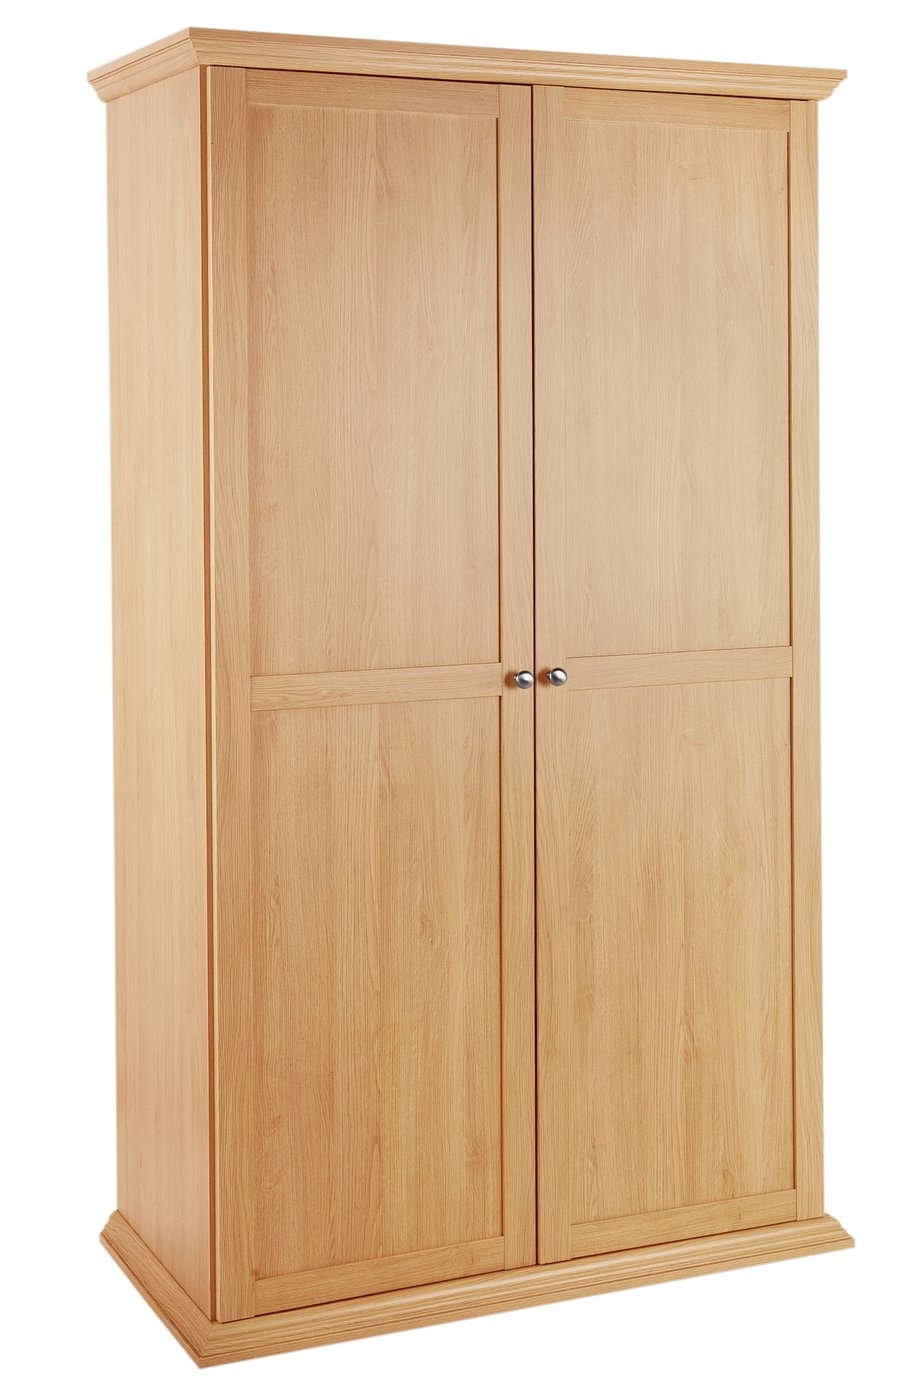 Argos Home Canterbury 2 Door Wardrobe - Oak Effect